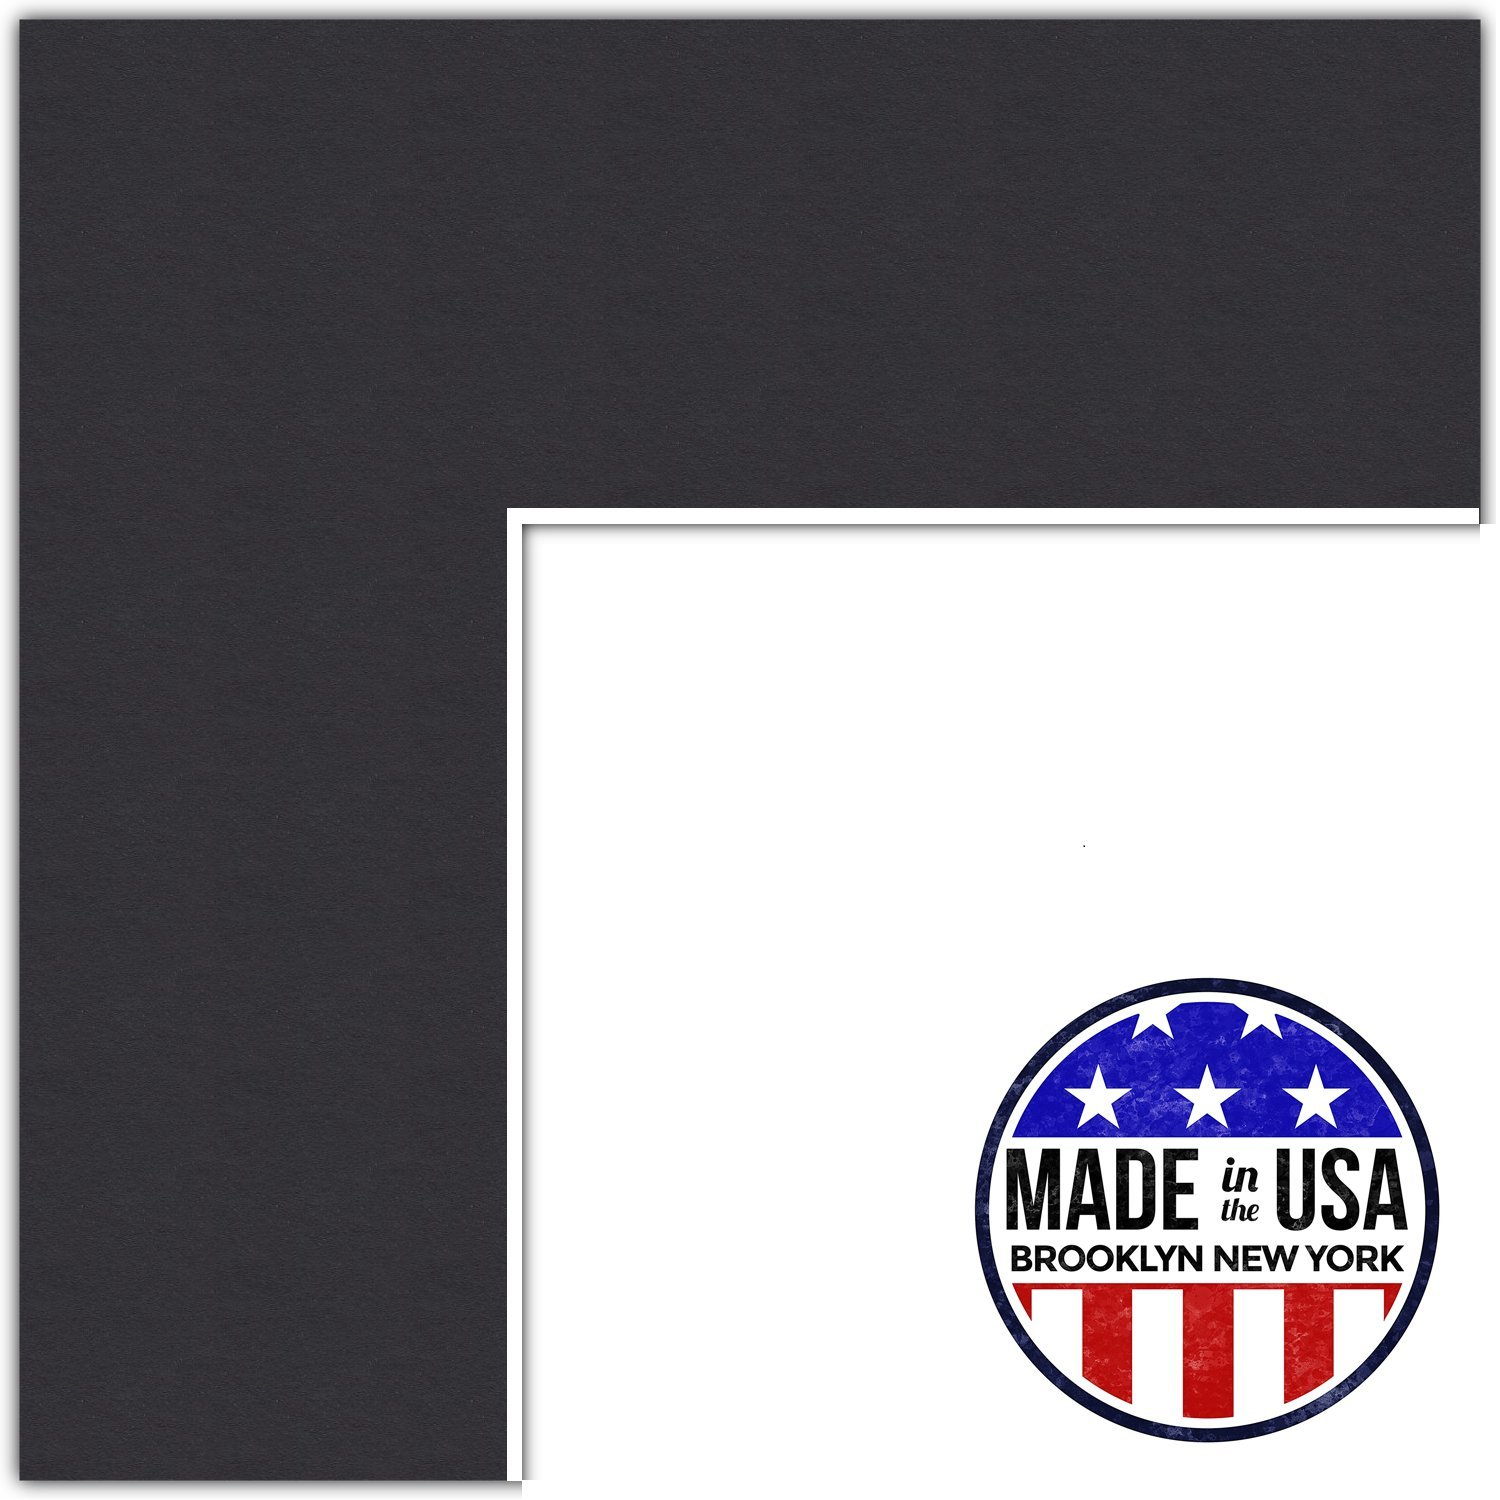 24x36 Smooth Black/Black Custom Mat for Picture Frame with 20x32 opening size (Mat Only, Frame NOT Included)